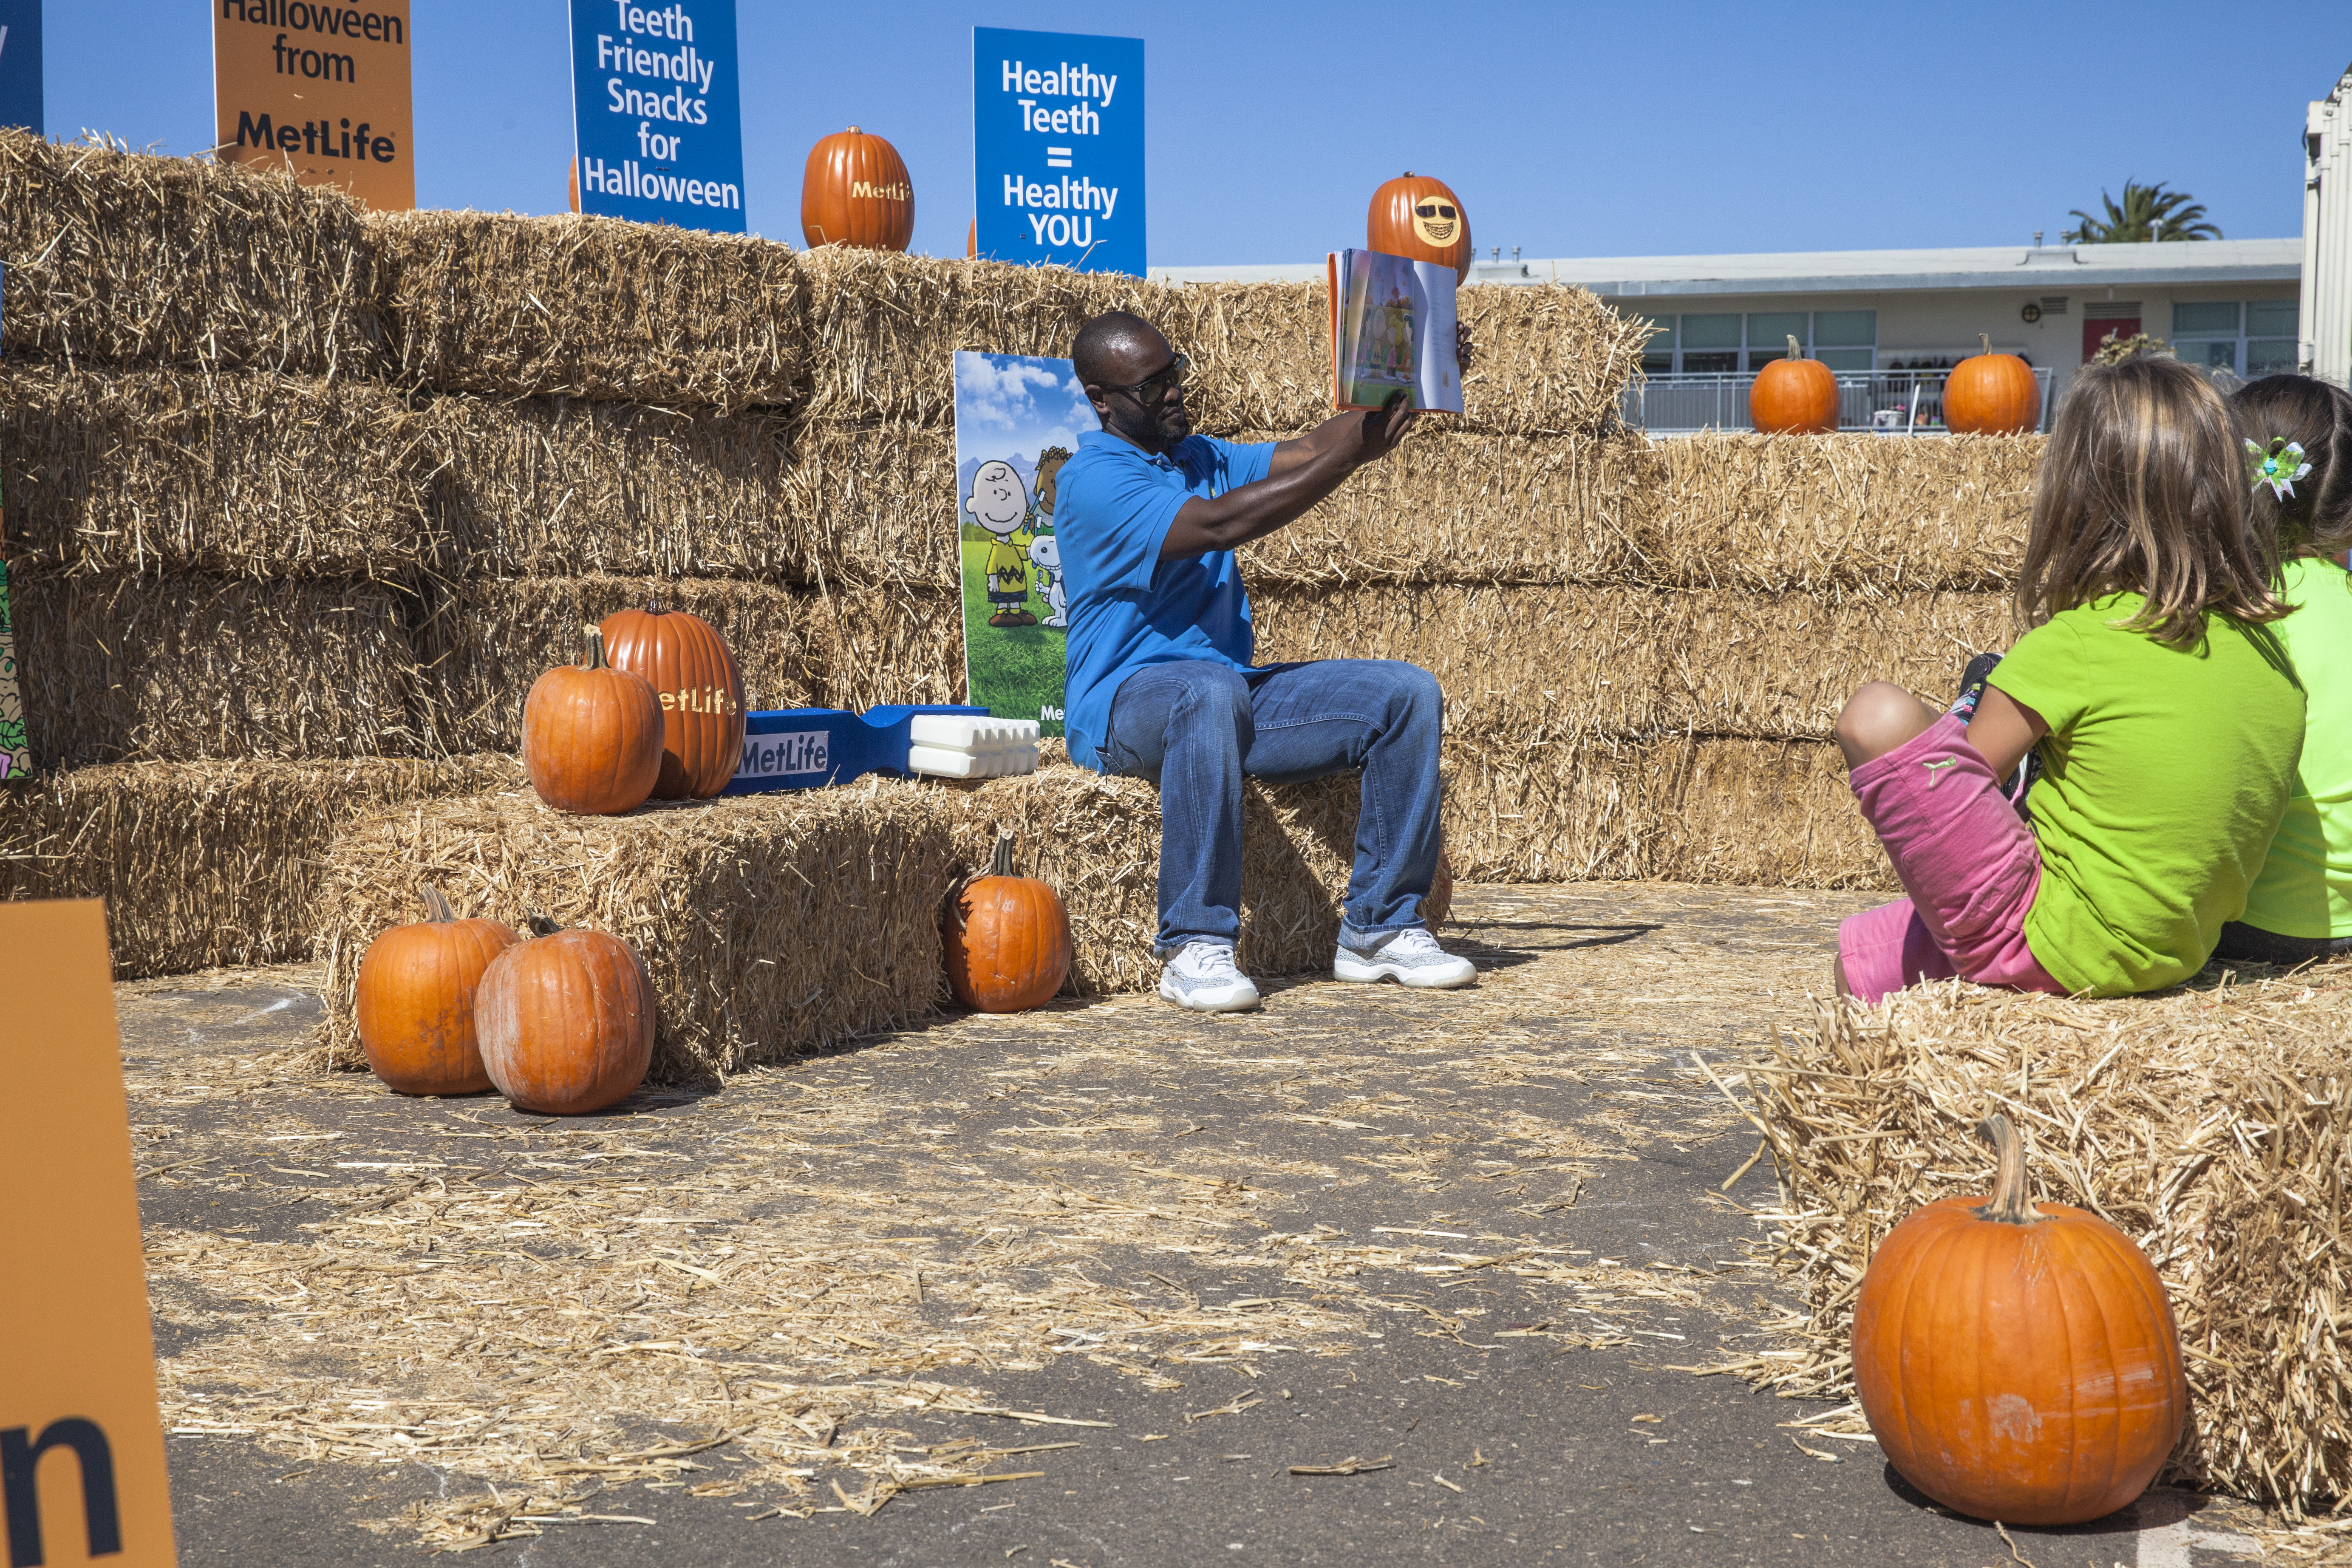 Tony Gwynn, Jr., baseball outfielder and San Diego native, joins MetLife to read It's The Great Pumpkin Charlie Brown in a pop-up pumpkin patch at Alice Birney Elementary to celebrate Open Enrollment season and Halloween.